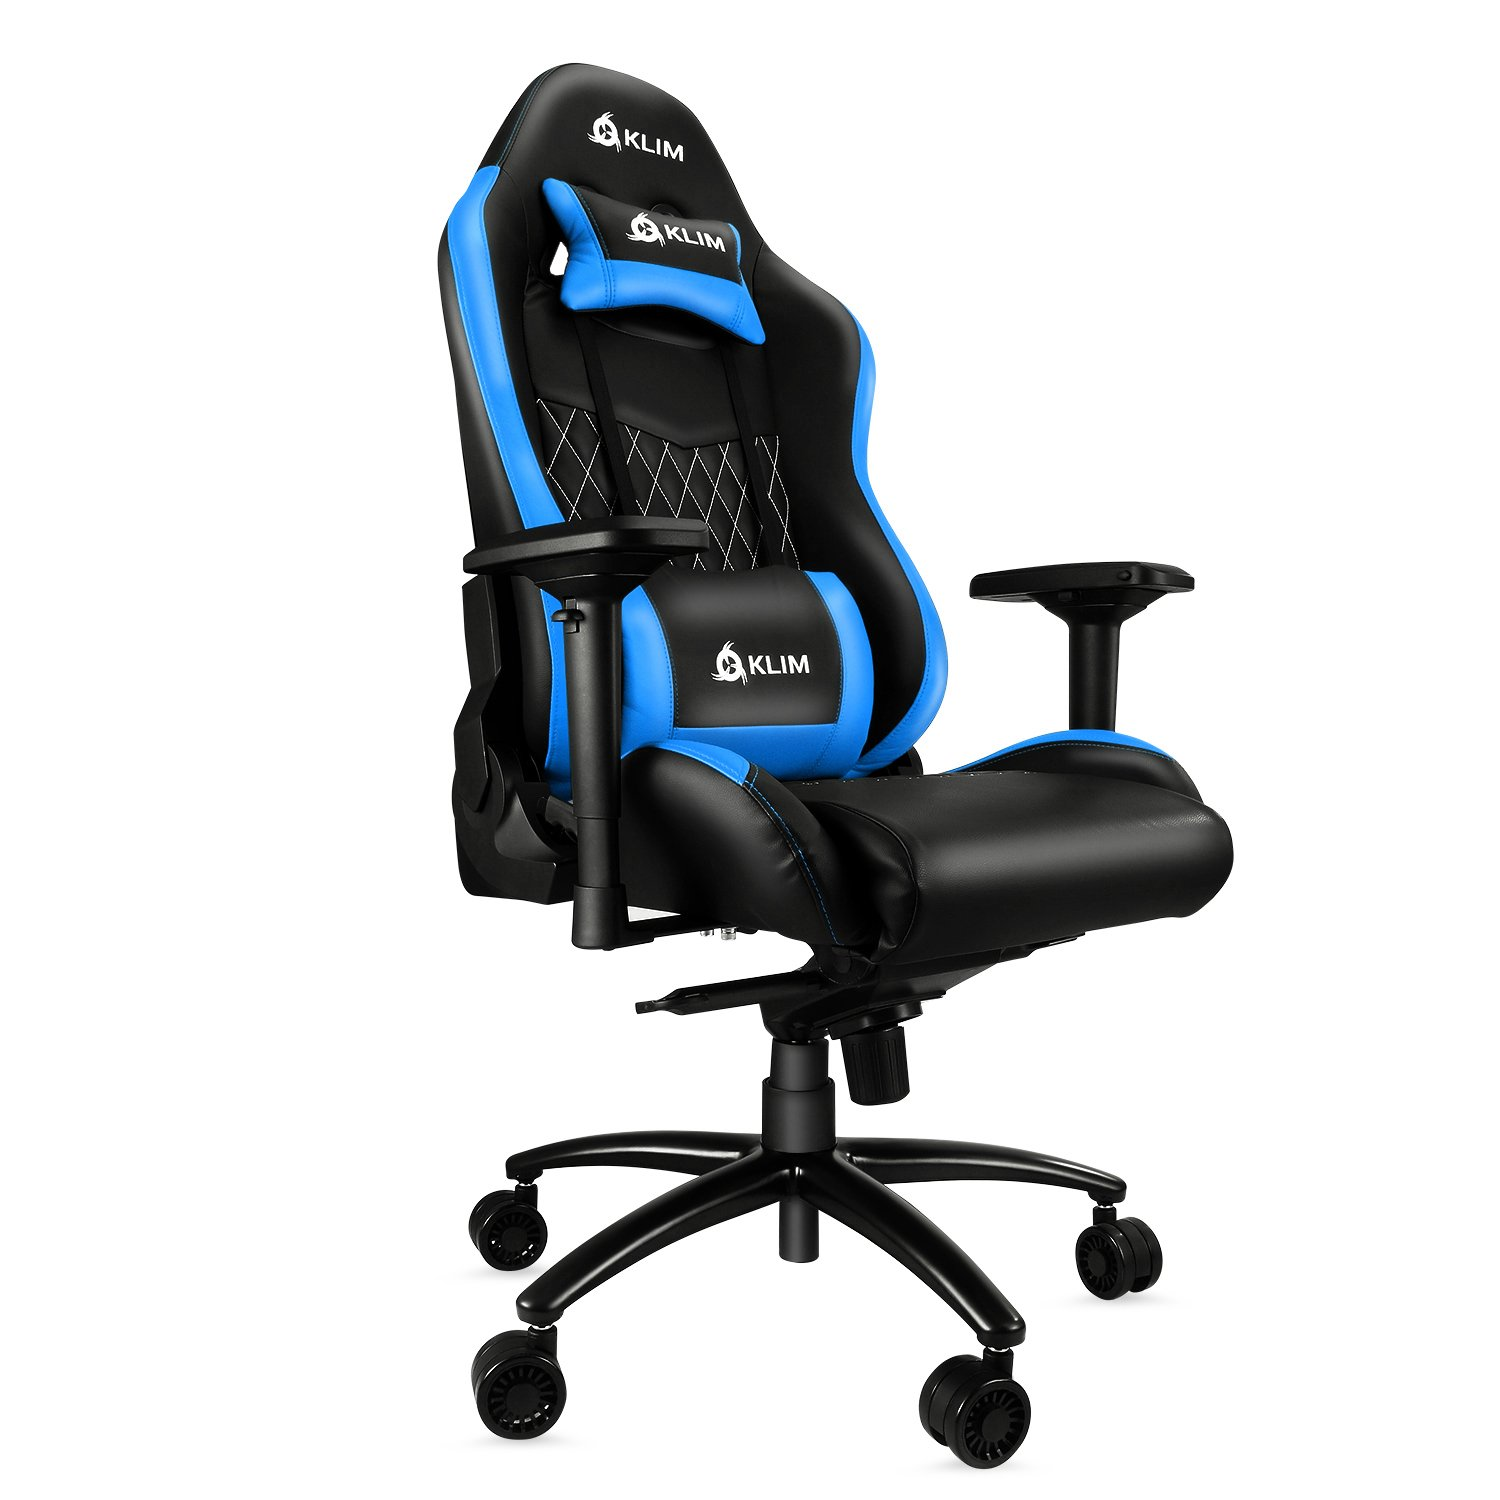 KLIM Esports Gaming Chair Executive Ergonomic Racing Computer Chair – Back Head Support – New – Adjustable Armrest – Desk Office Recliner – Silla Gamer – Black Blue Cushion